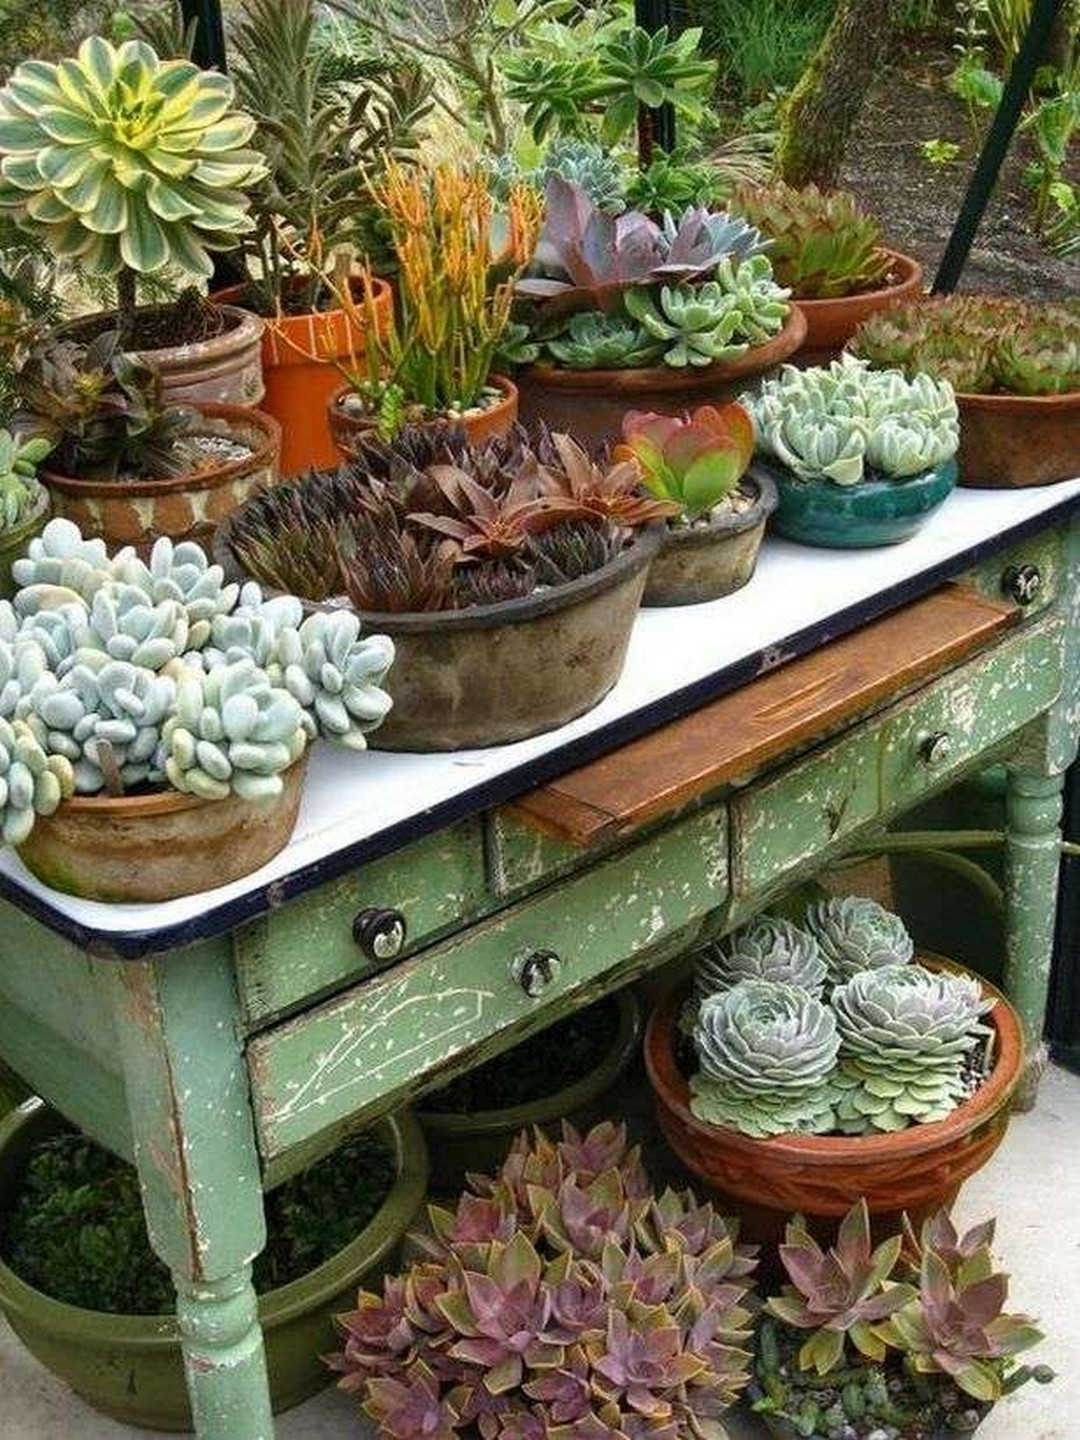 30 Pretty Vintage Garden Decor Ideas For Your Outdoor Space Page 9 Of 31